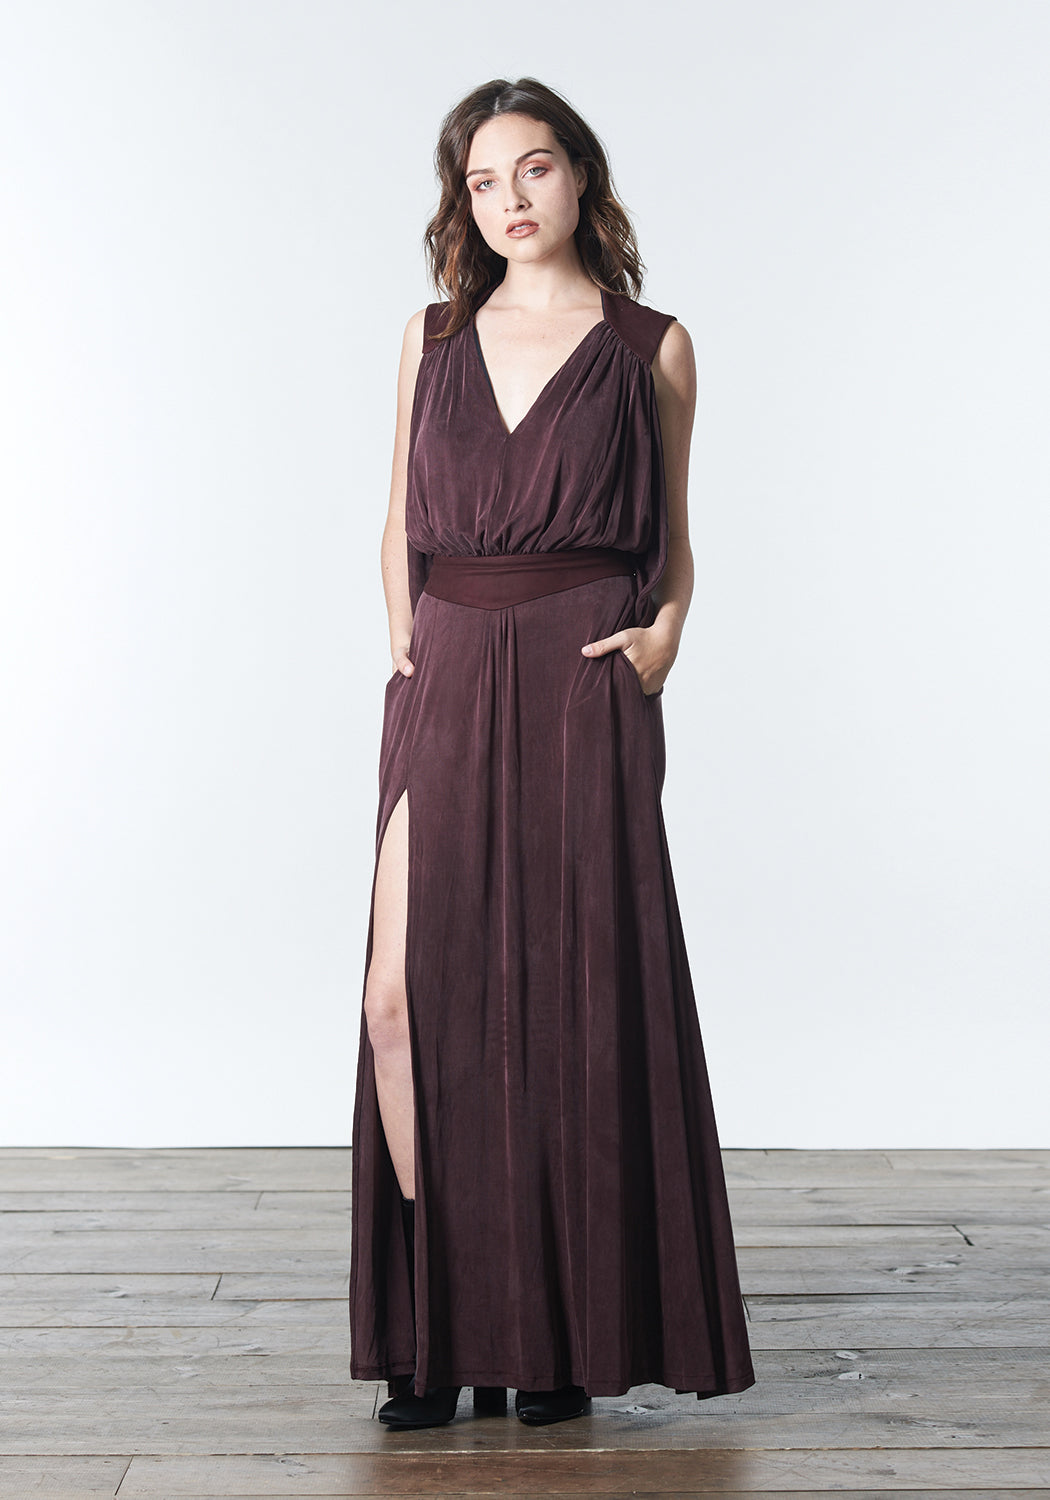 winter maxi dress in deep mauve, purple, plum, burgundy color that can be dressed up and worn as a gown to black tie or other evening event or dressed down for daytime looks.